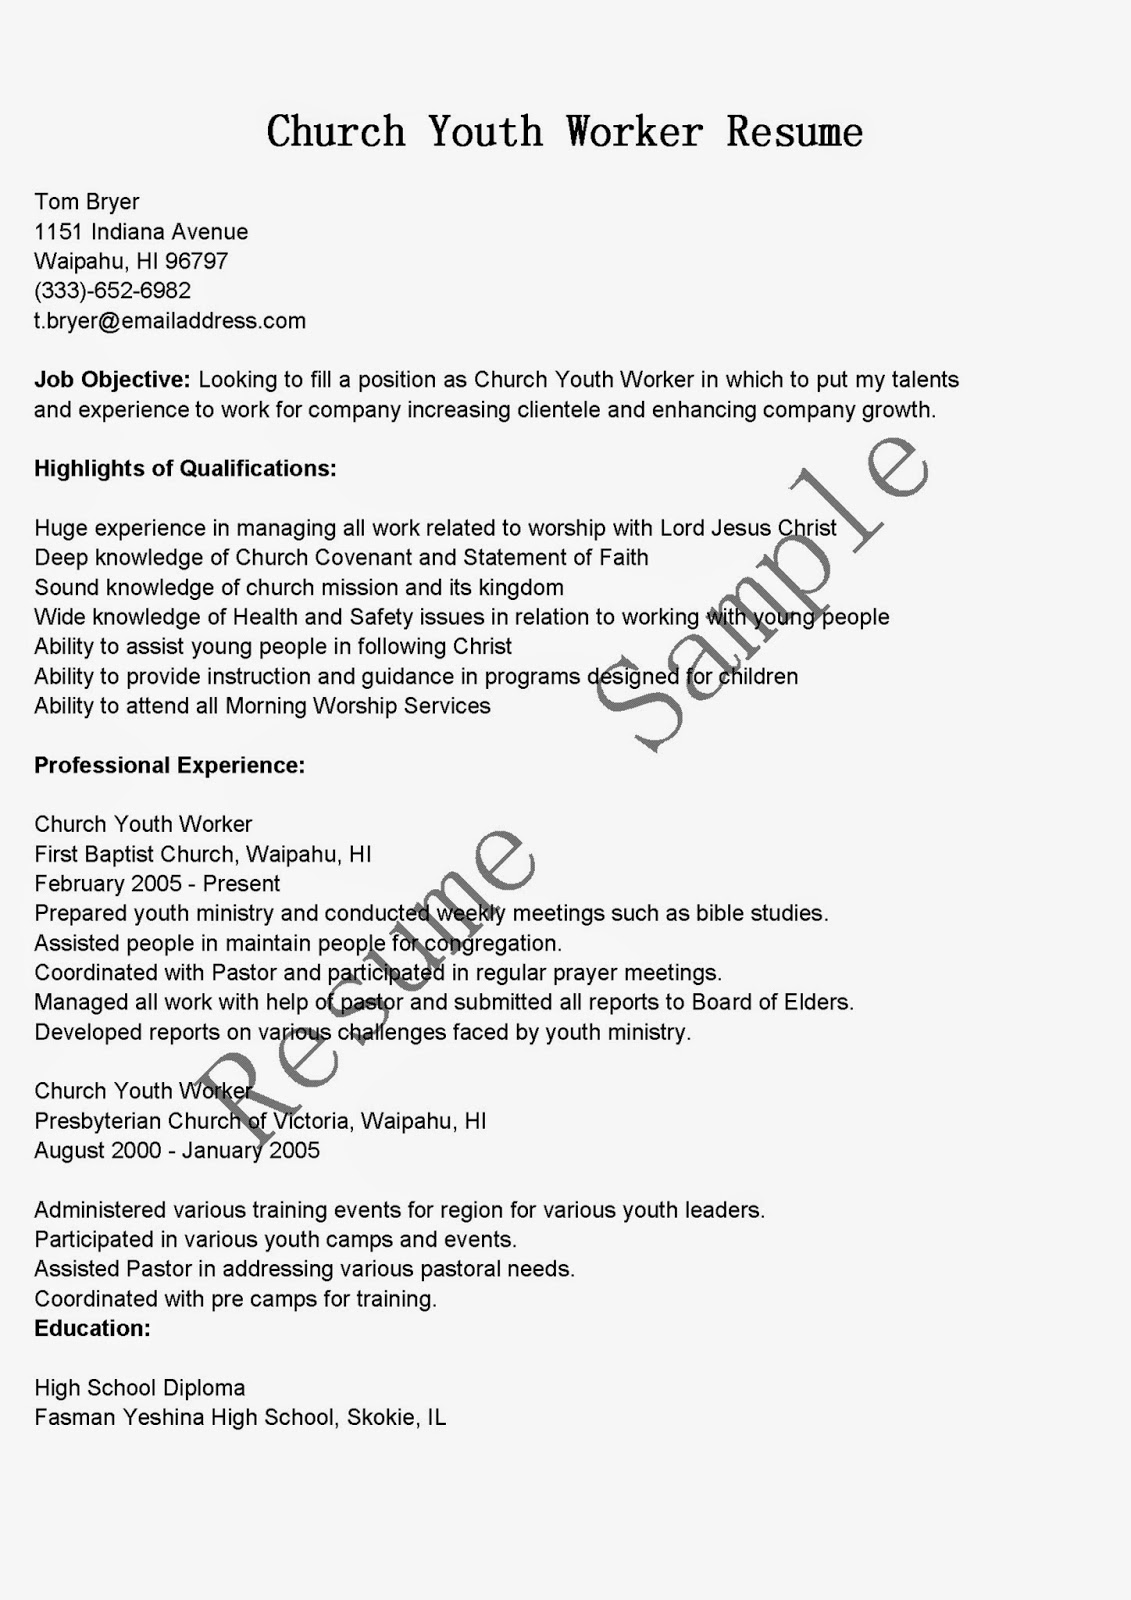 resume samples  church youth worker resume sample